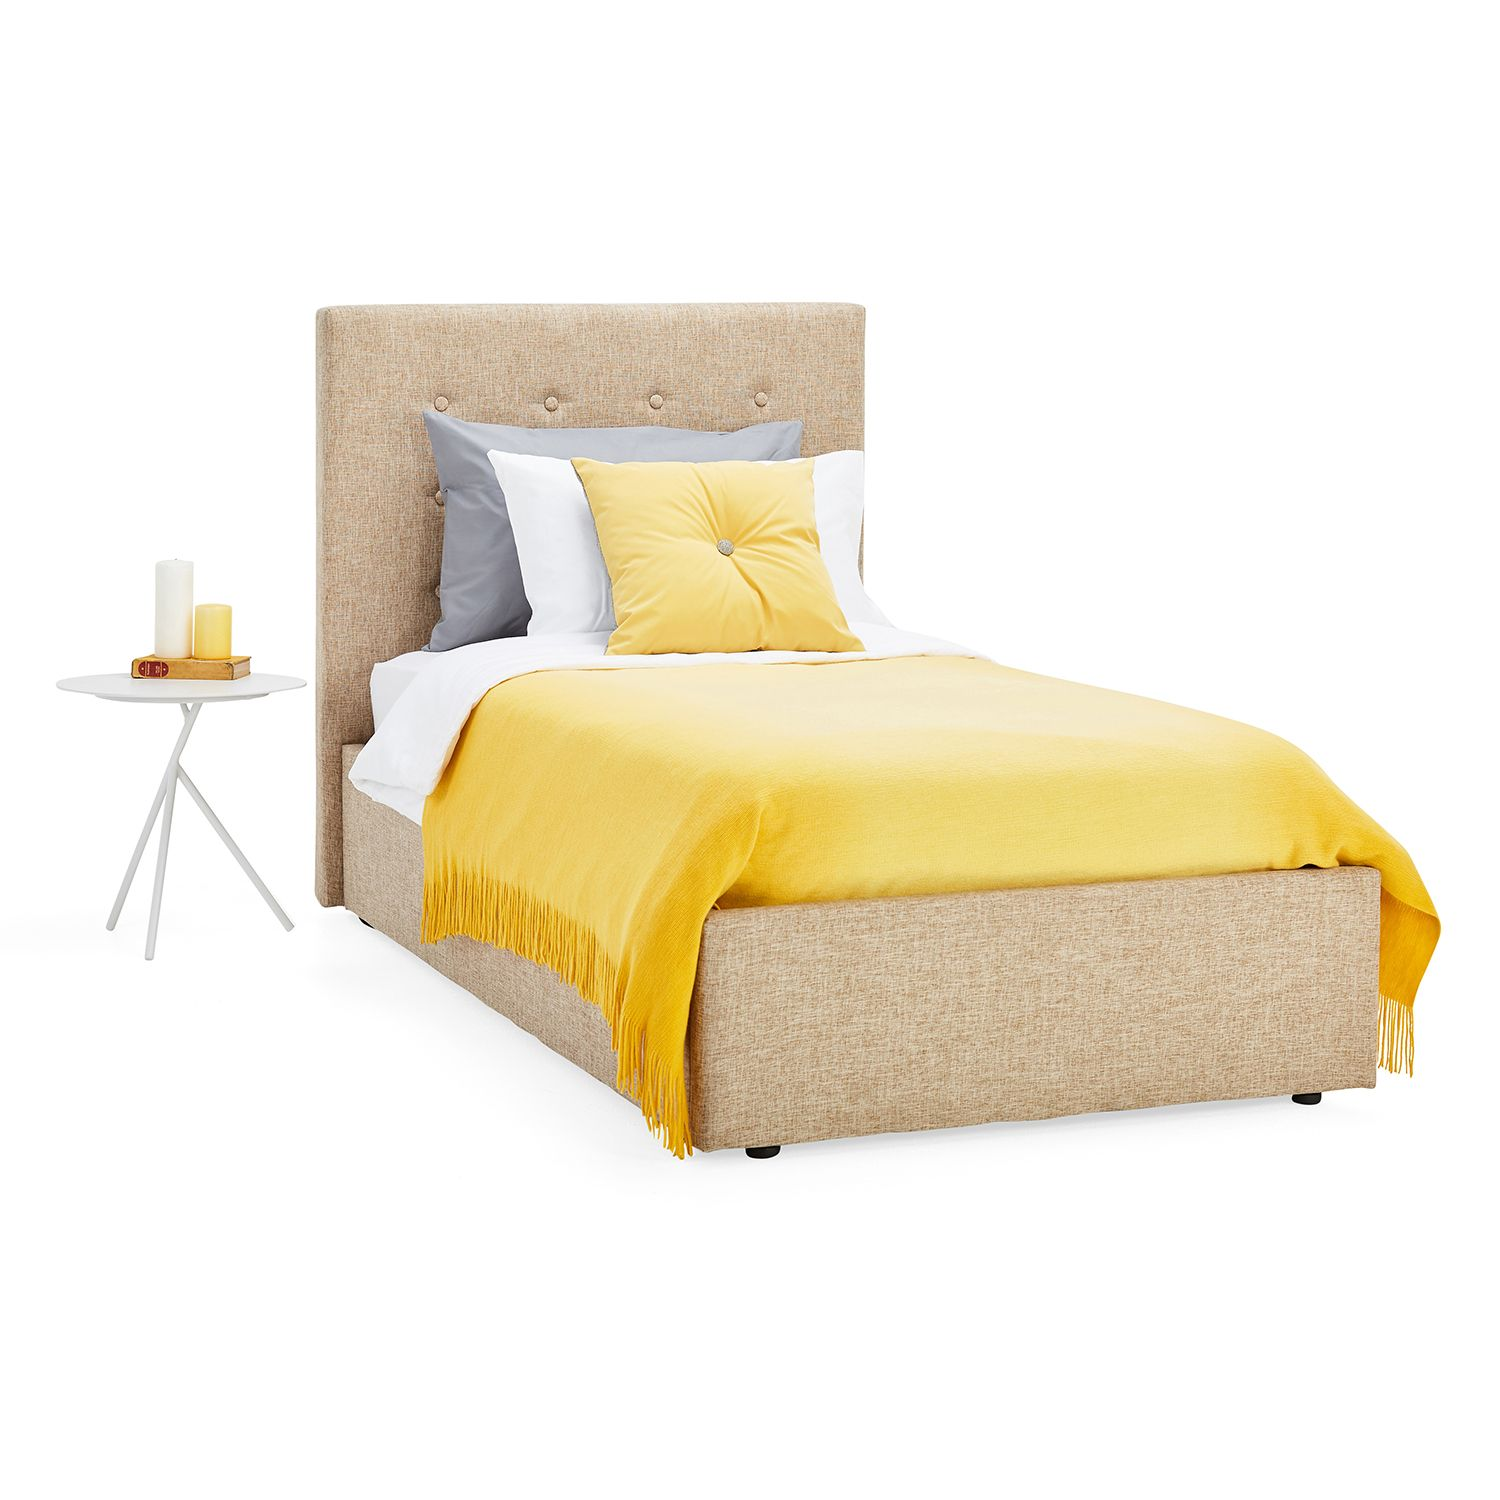 Lucca Upholstered Ottoman Bed Upholstered ottoman